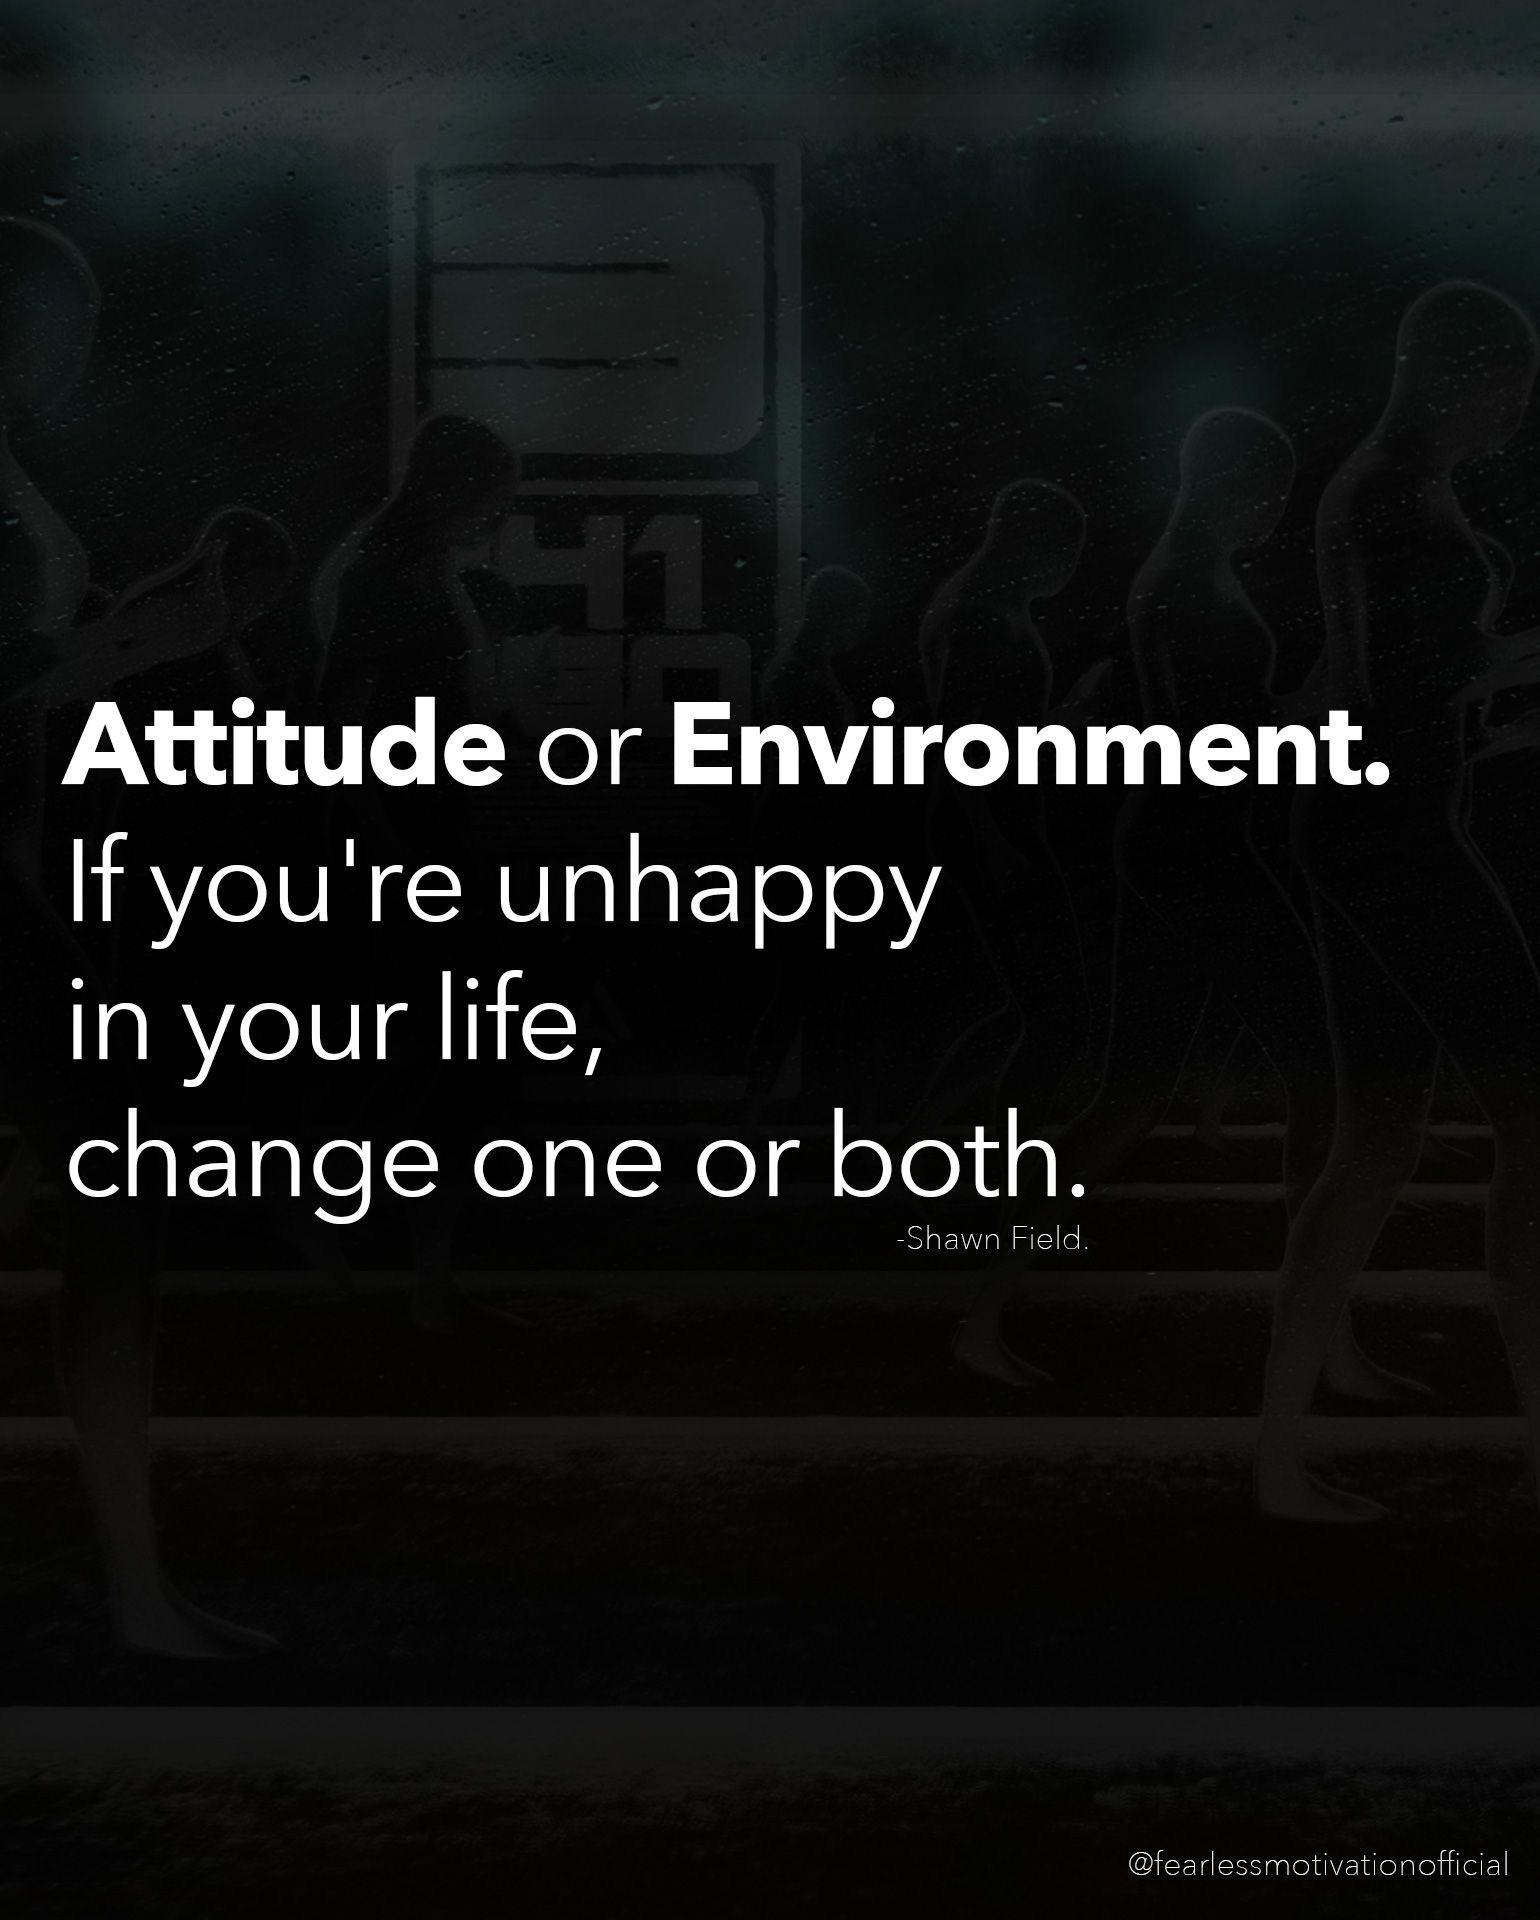 [Image] Change is necessary, attitude determines where you at